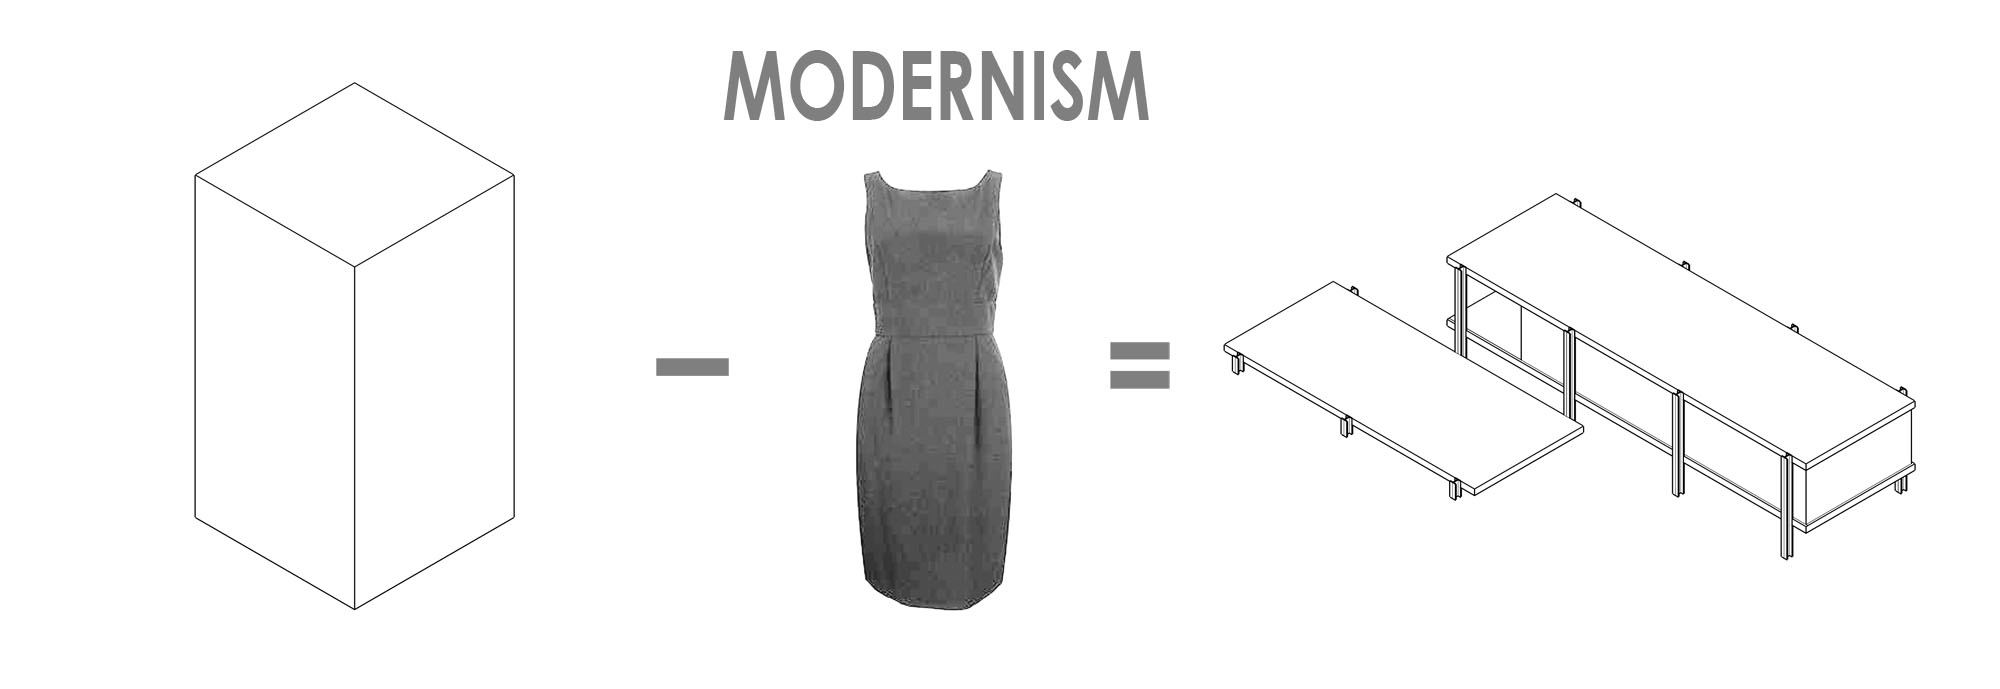 Modern Architecture Vs Postmodern Architecture modernism and postmodernism | coffee with an architect